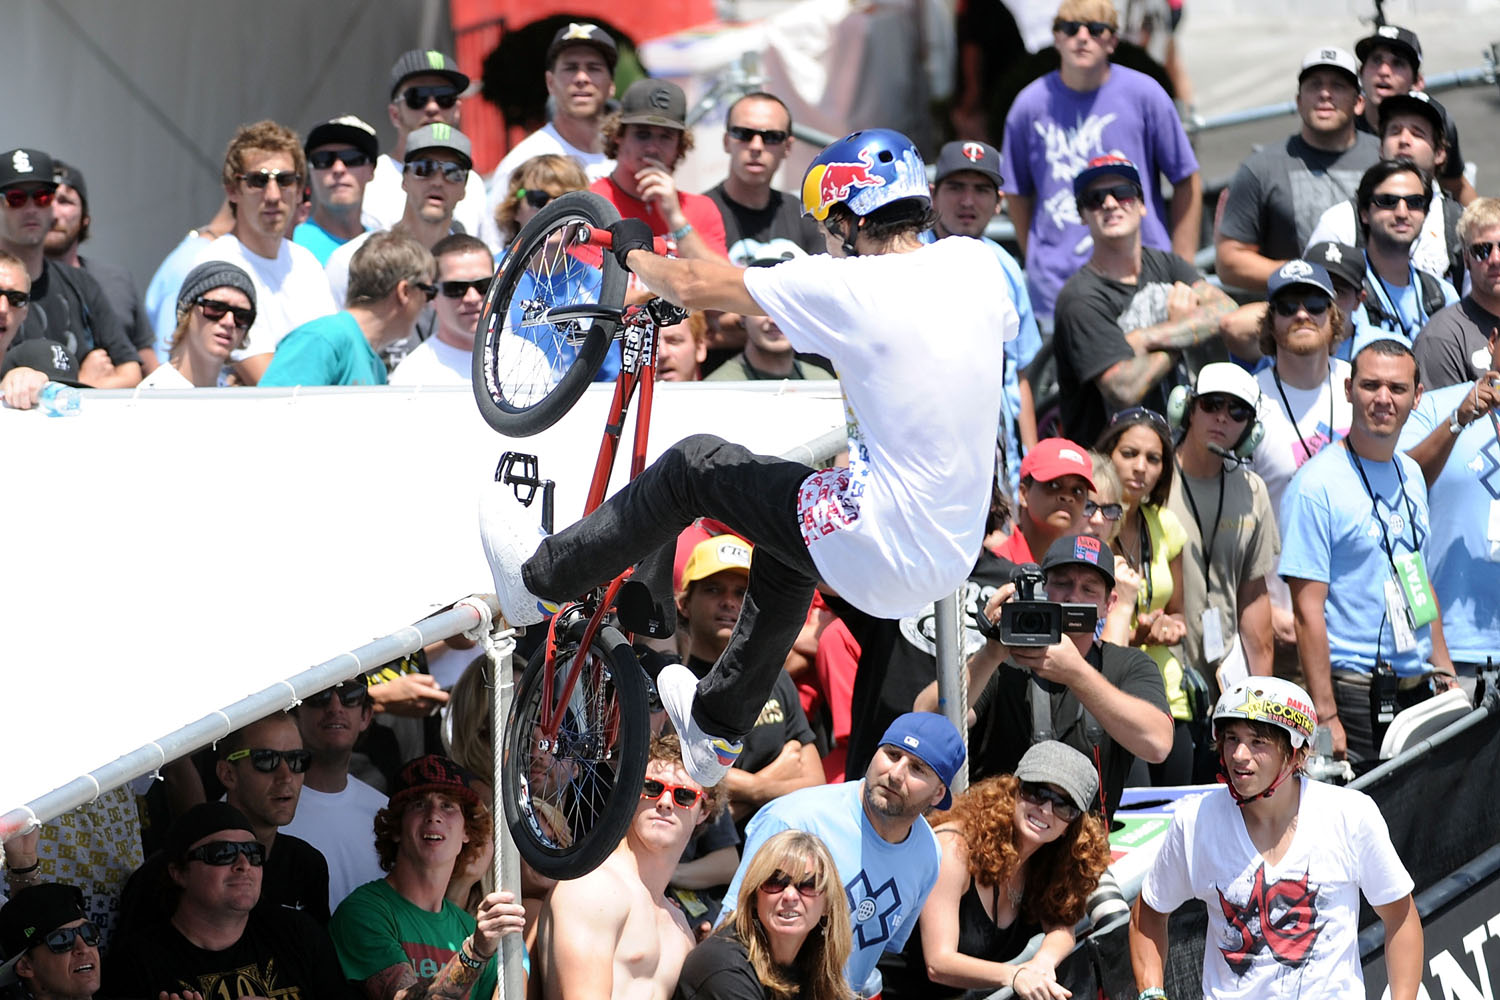 Daniel Dhers surprises fans as he competes for a gold medal in the BMX Freestyle Park final during X Games 16 at the Event Deck LA Live on July 31, 2010 in Los Angeles, California.